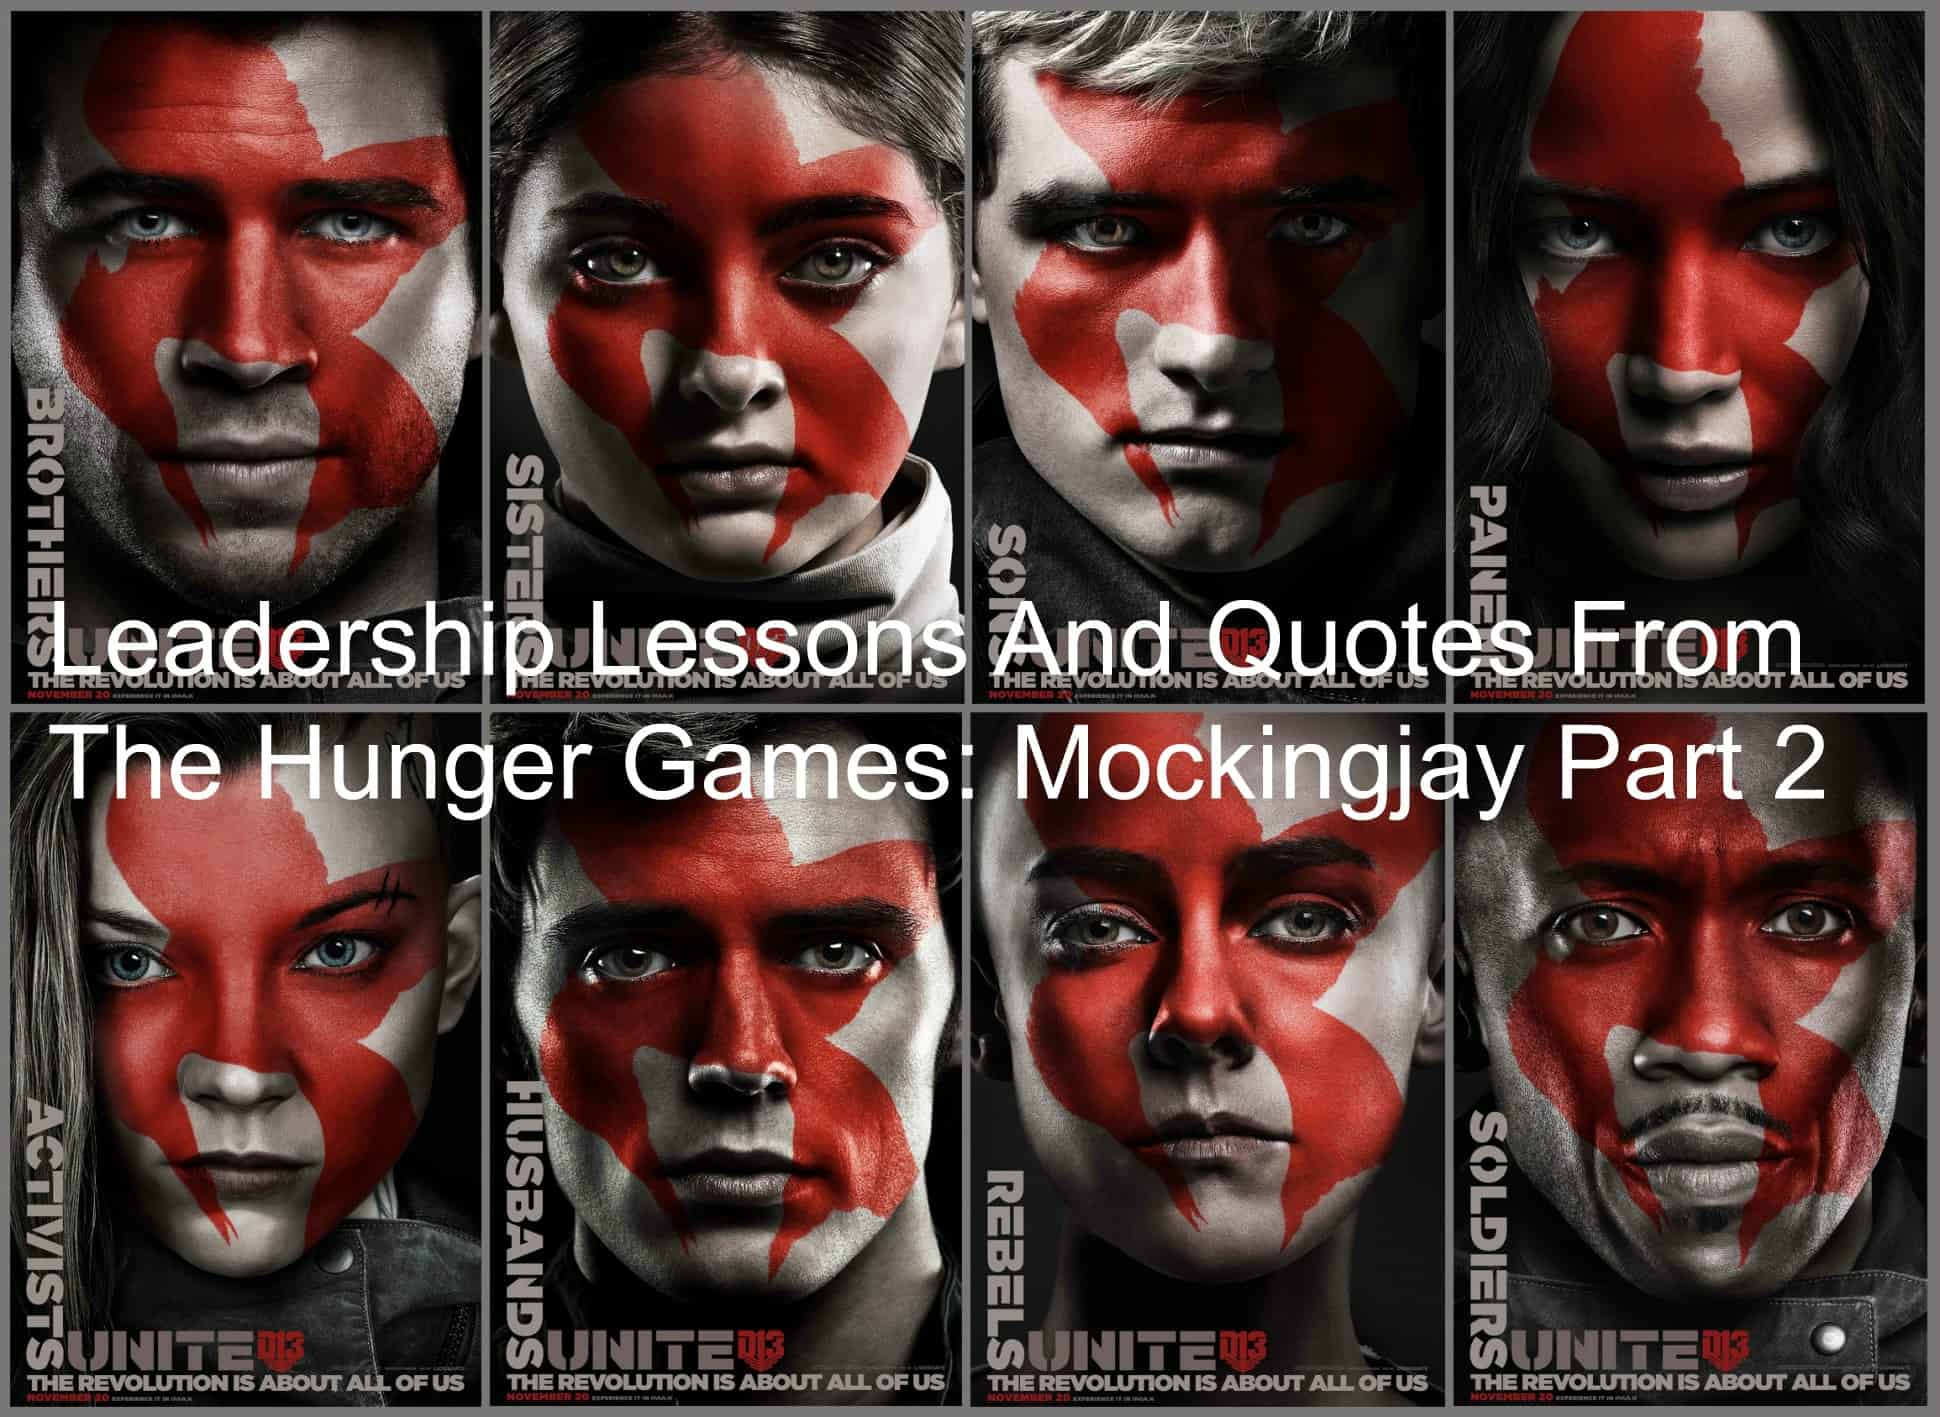 Leadership Lessons And Quotes From The Hunger Games